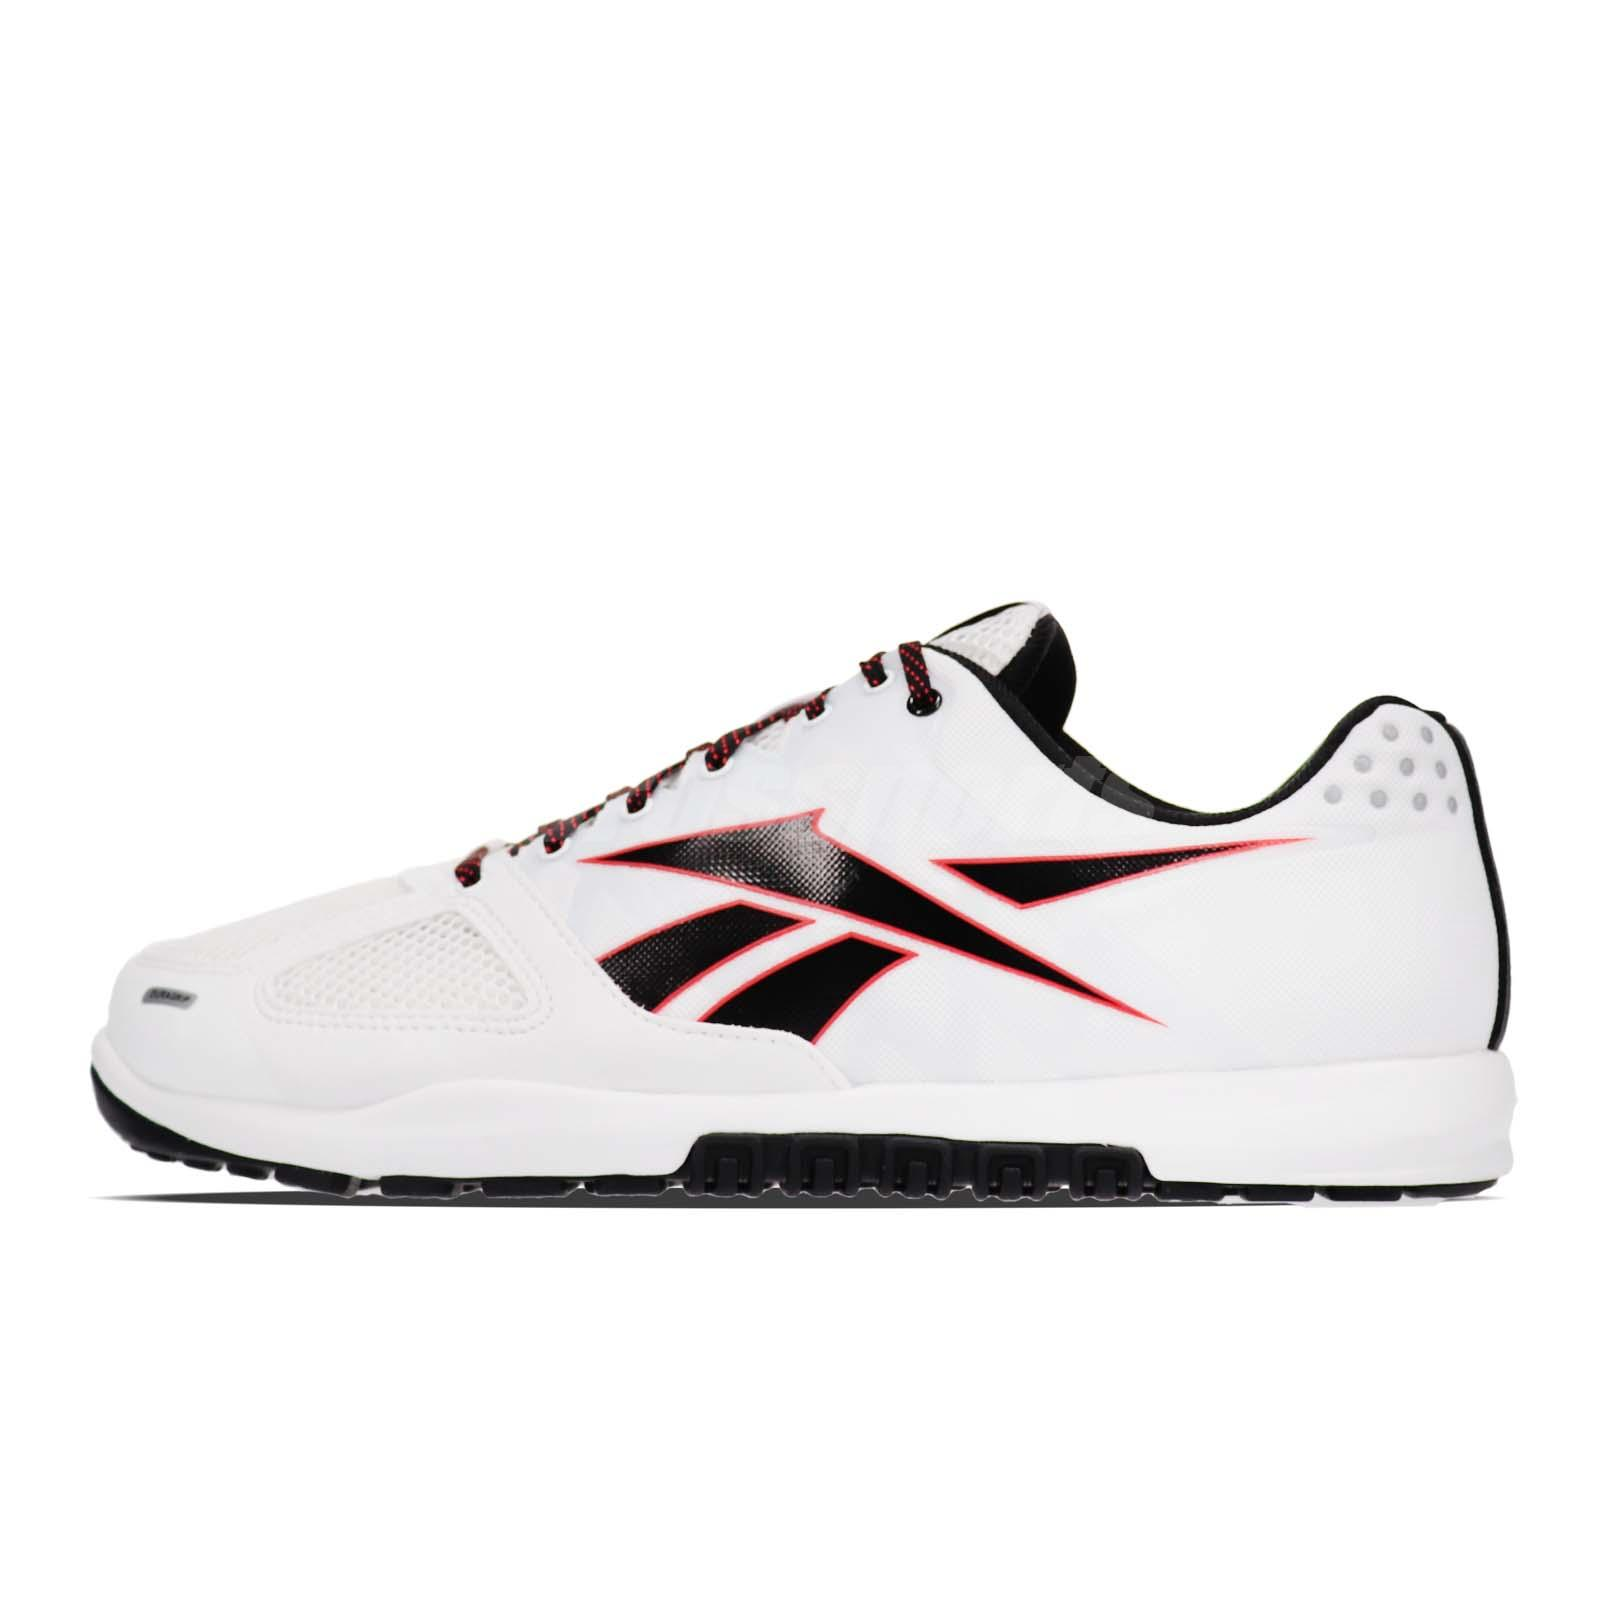 5b597d0a508 Reebok R CrossFit Nano 2.0 White Black Red Men Cross Training Shoes DV5748